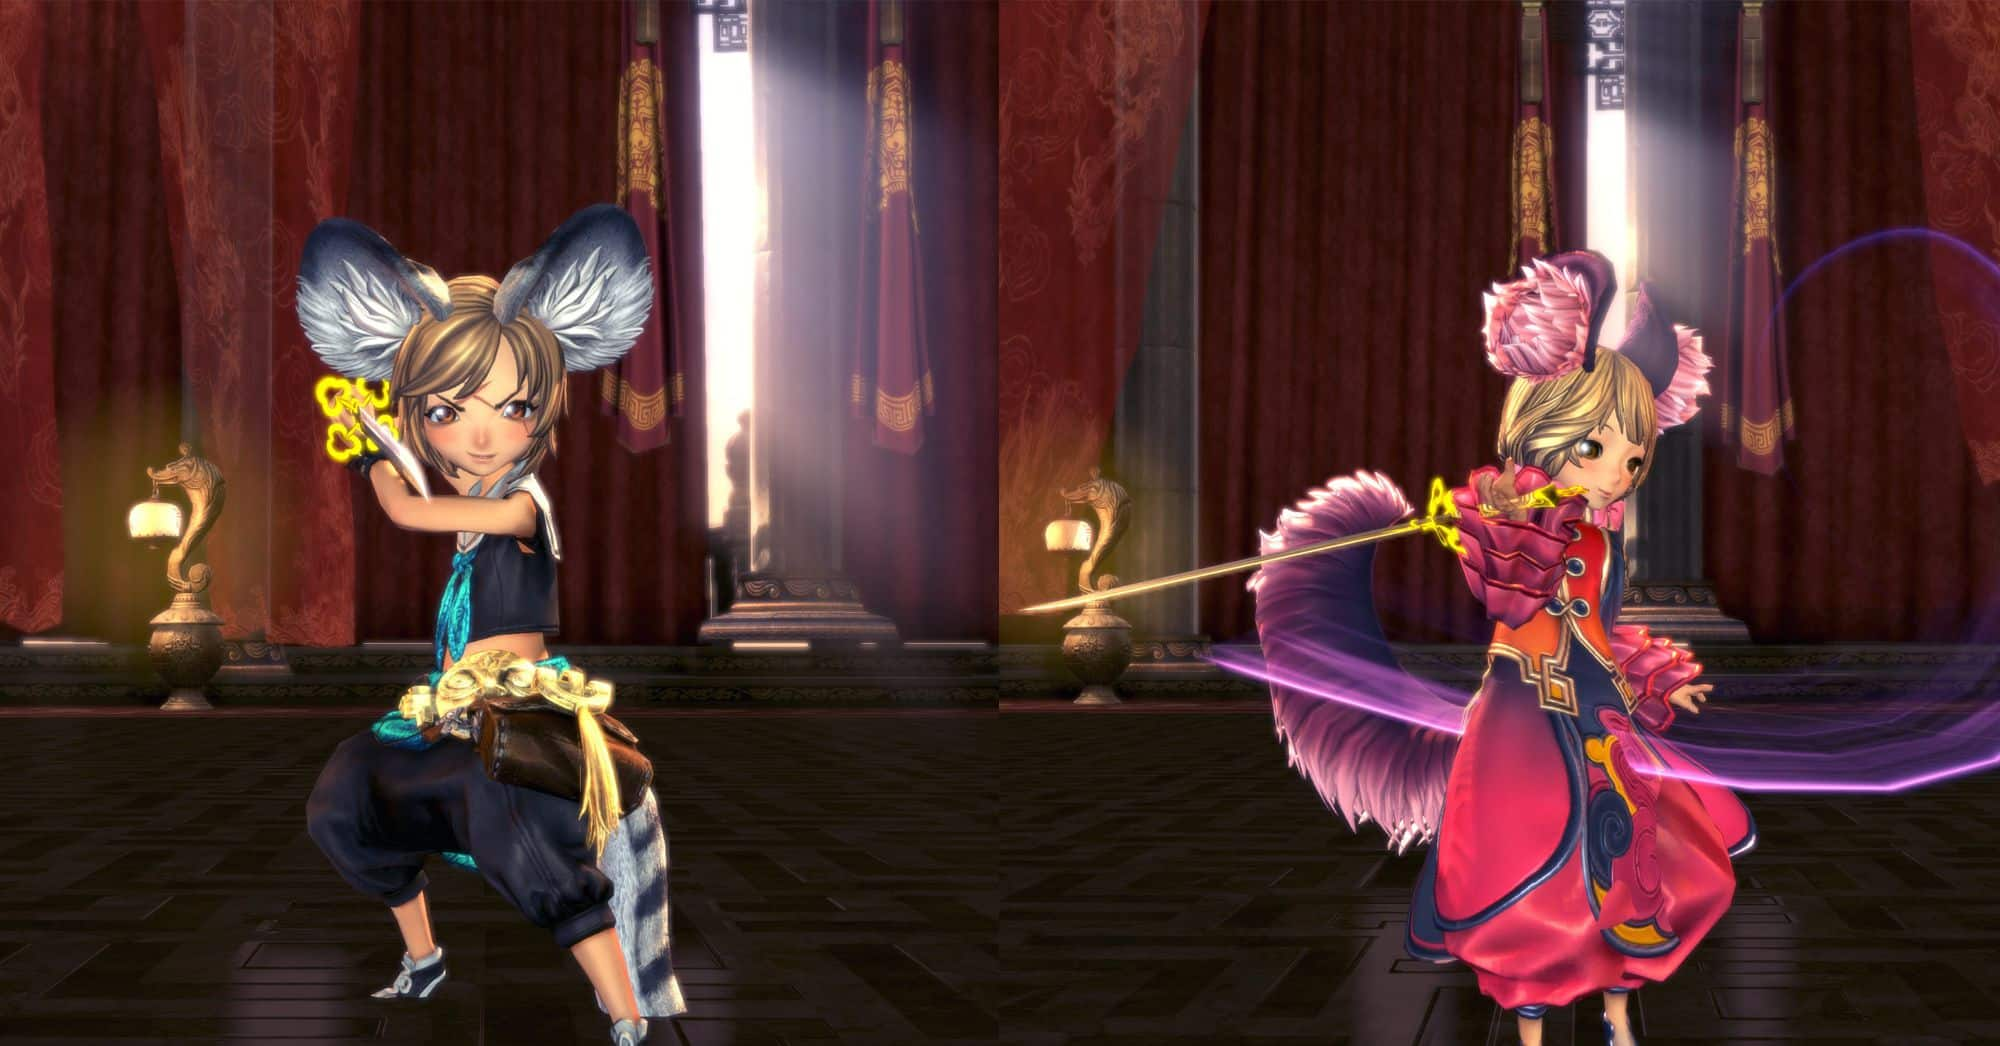 Blade & Soul - Class Guide for New Players - 11 Classes & What to